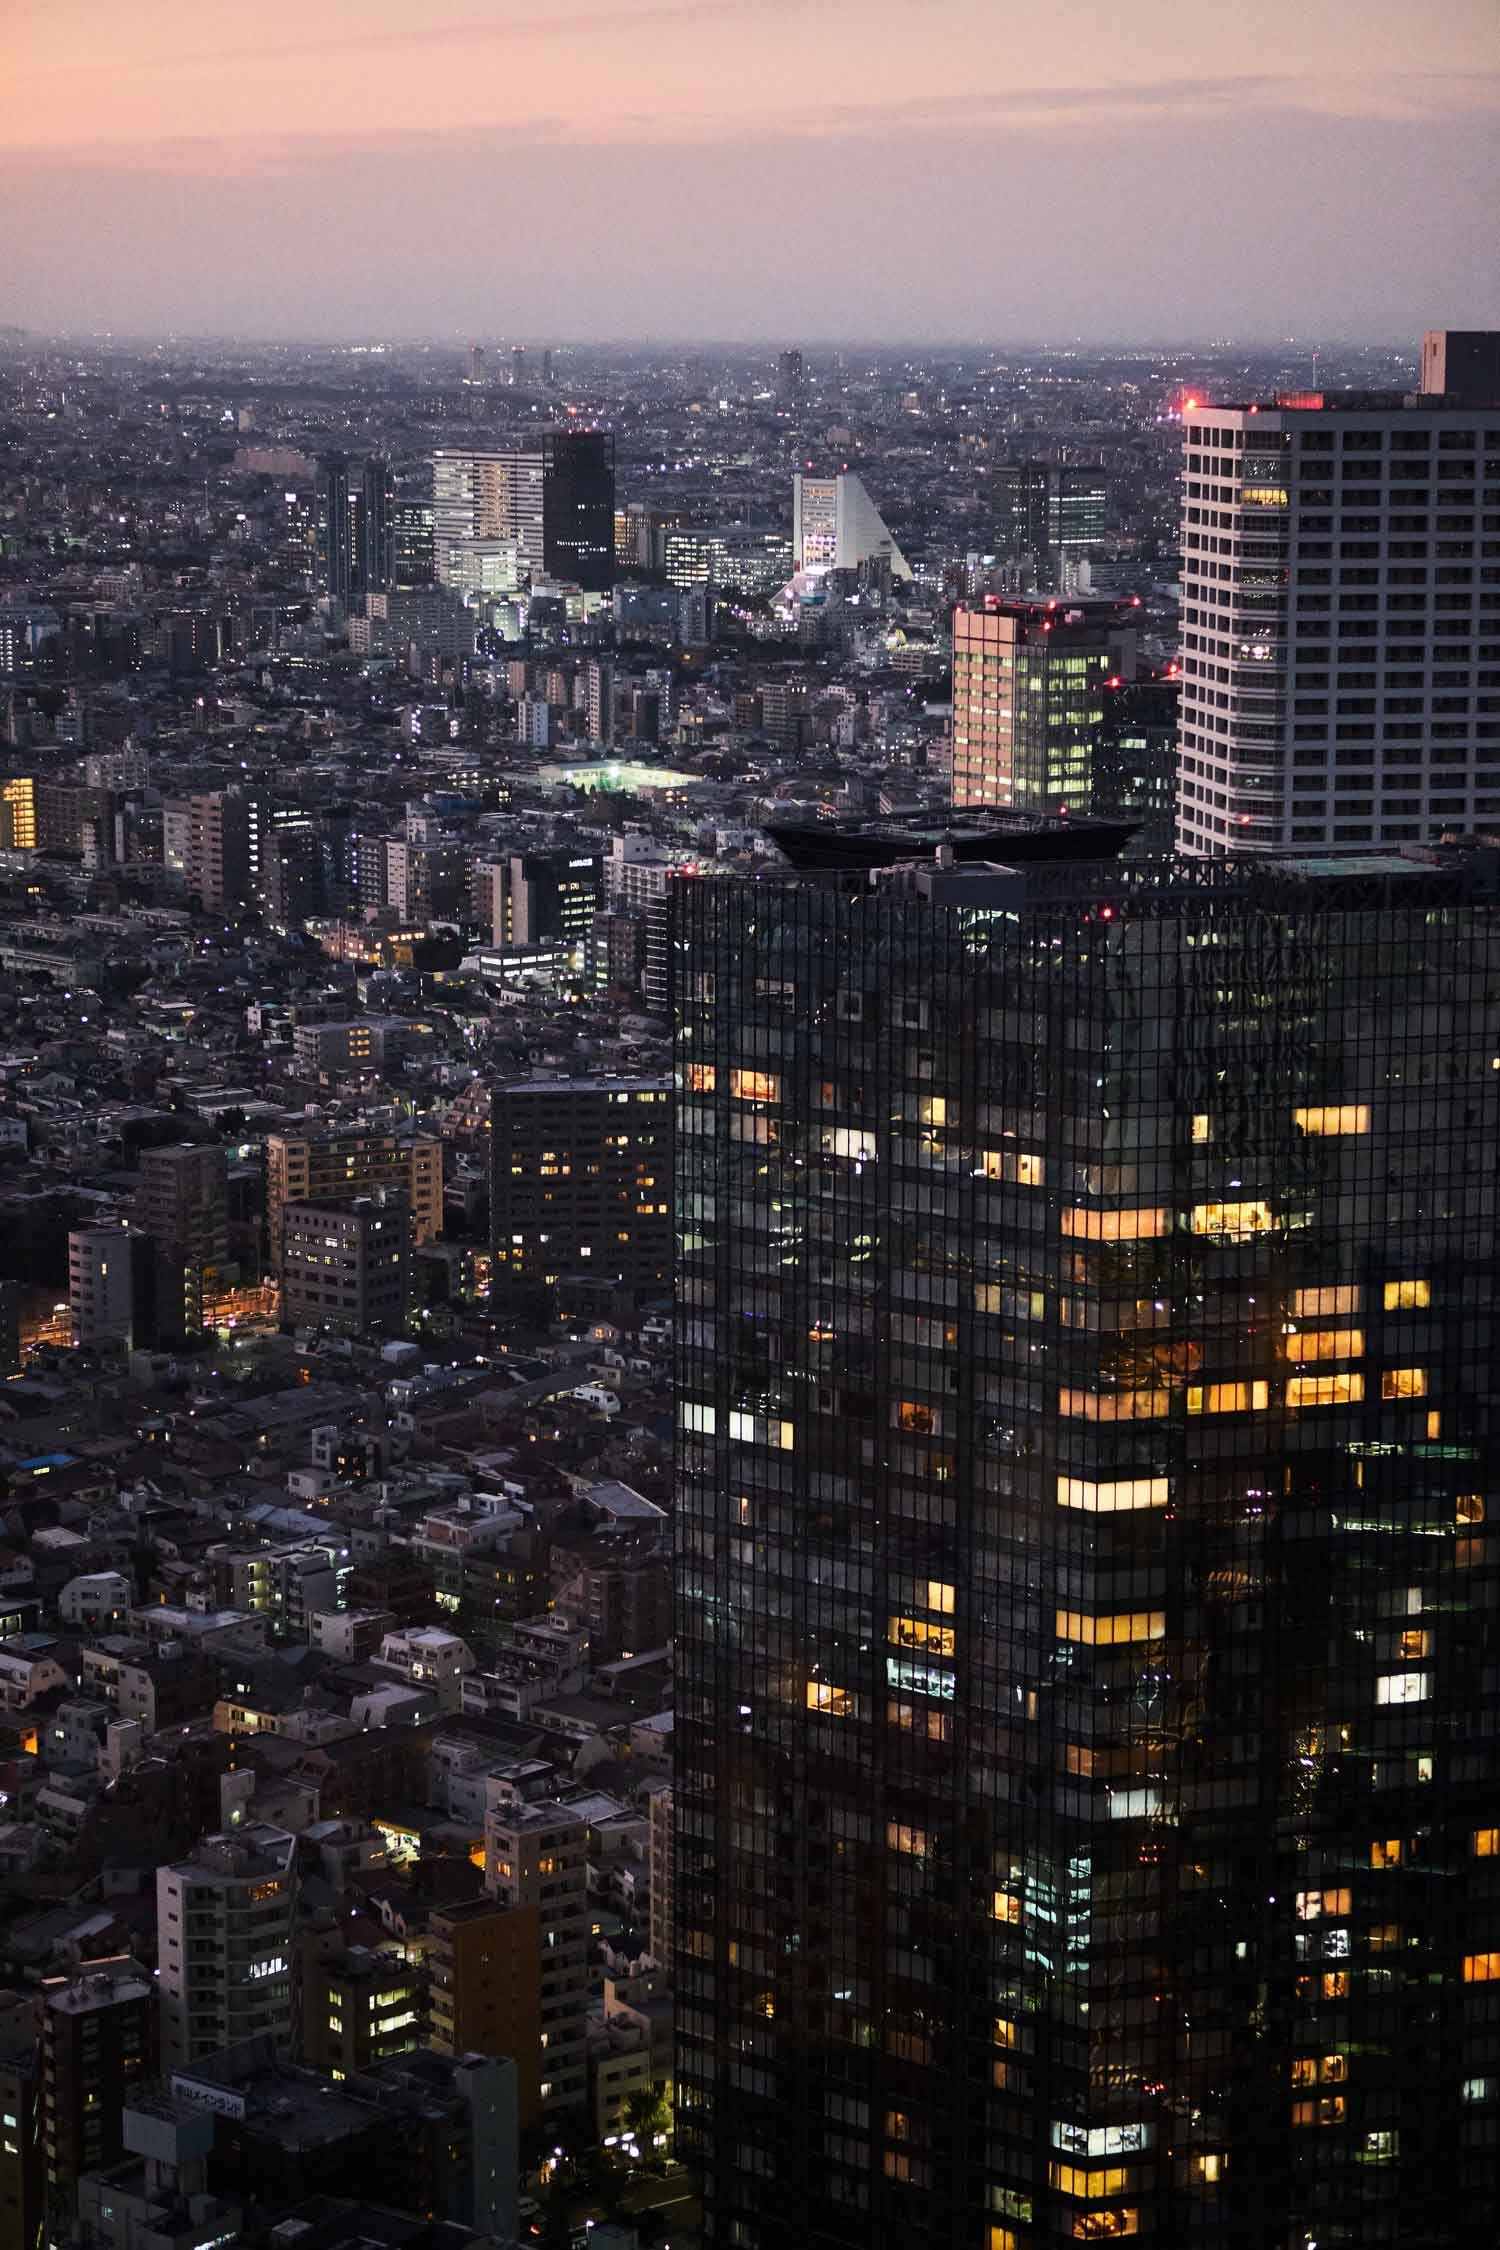 tokyo-from-above.jpg